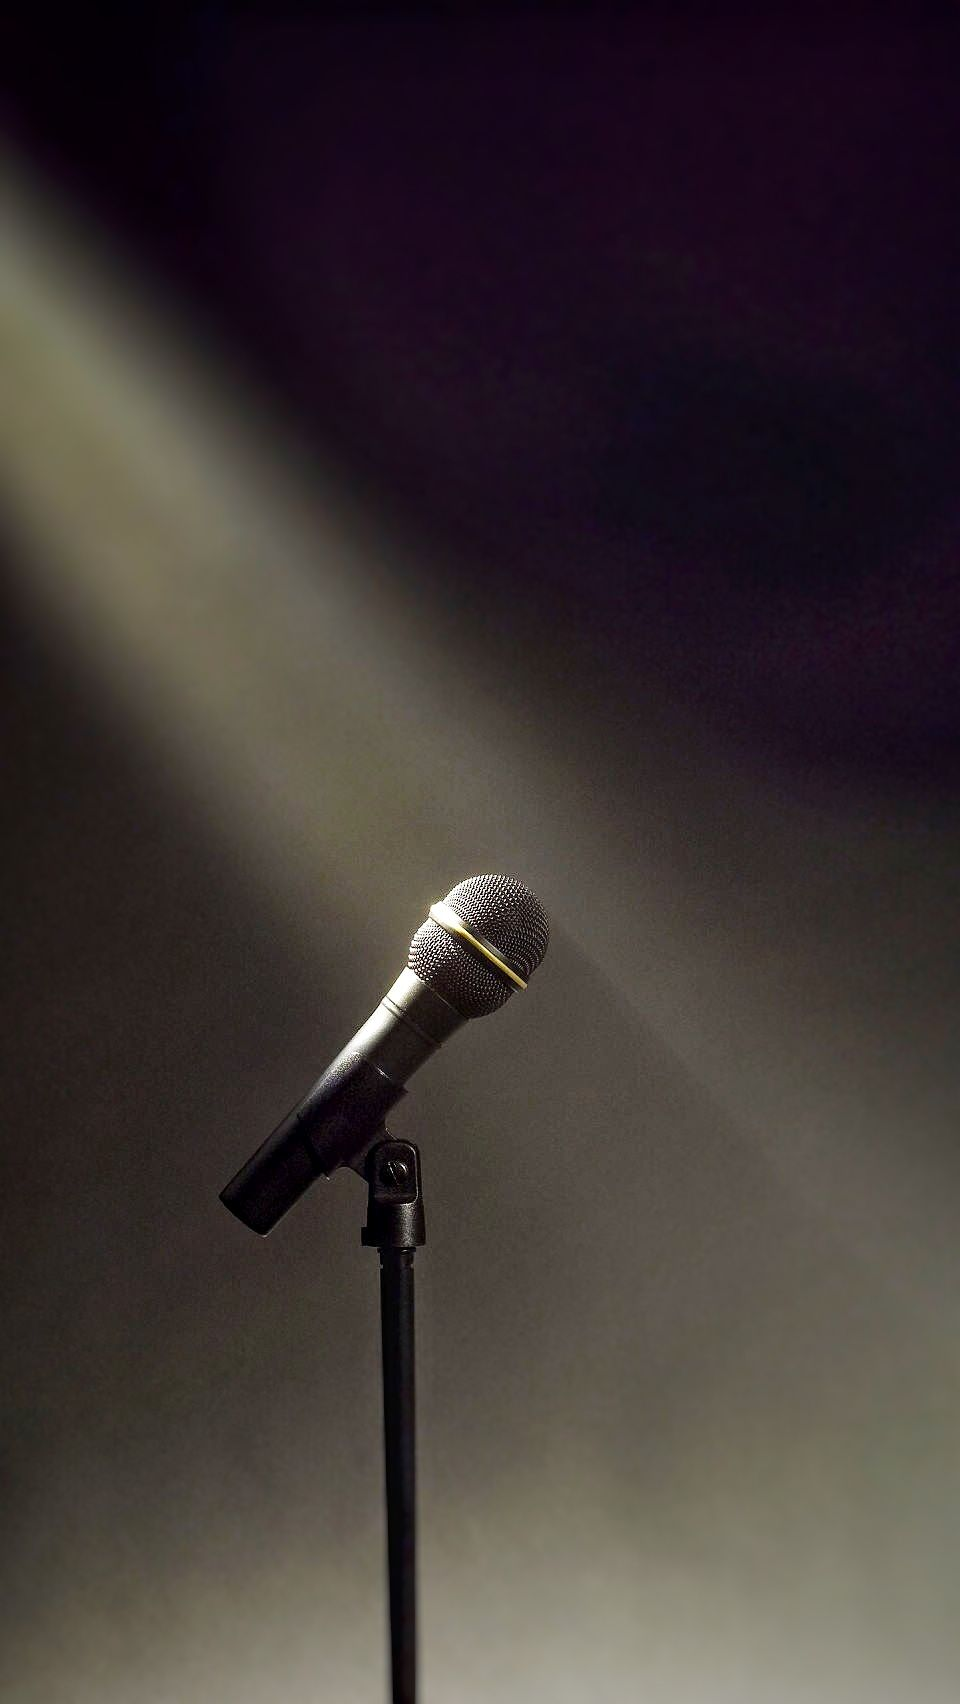 Microphone Light Iphone 7 Wallpaper Music Wallpaper Music Photography Music Aesthetic